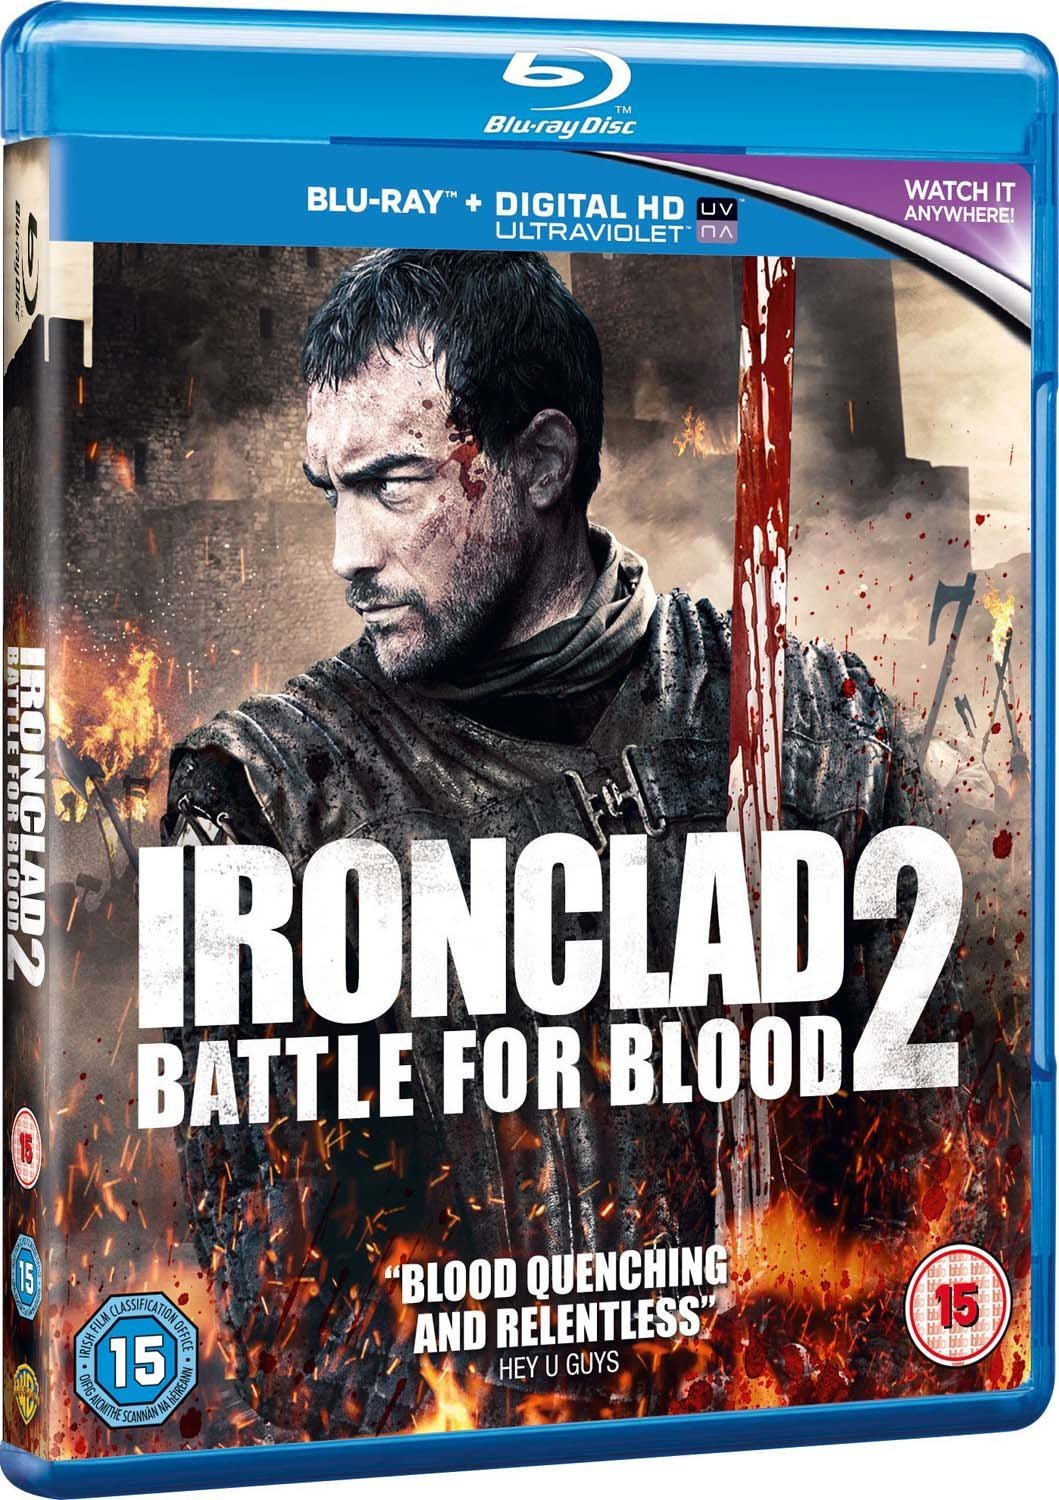 Ironclad 2: Battle For Blood (Blu-ray)